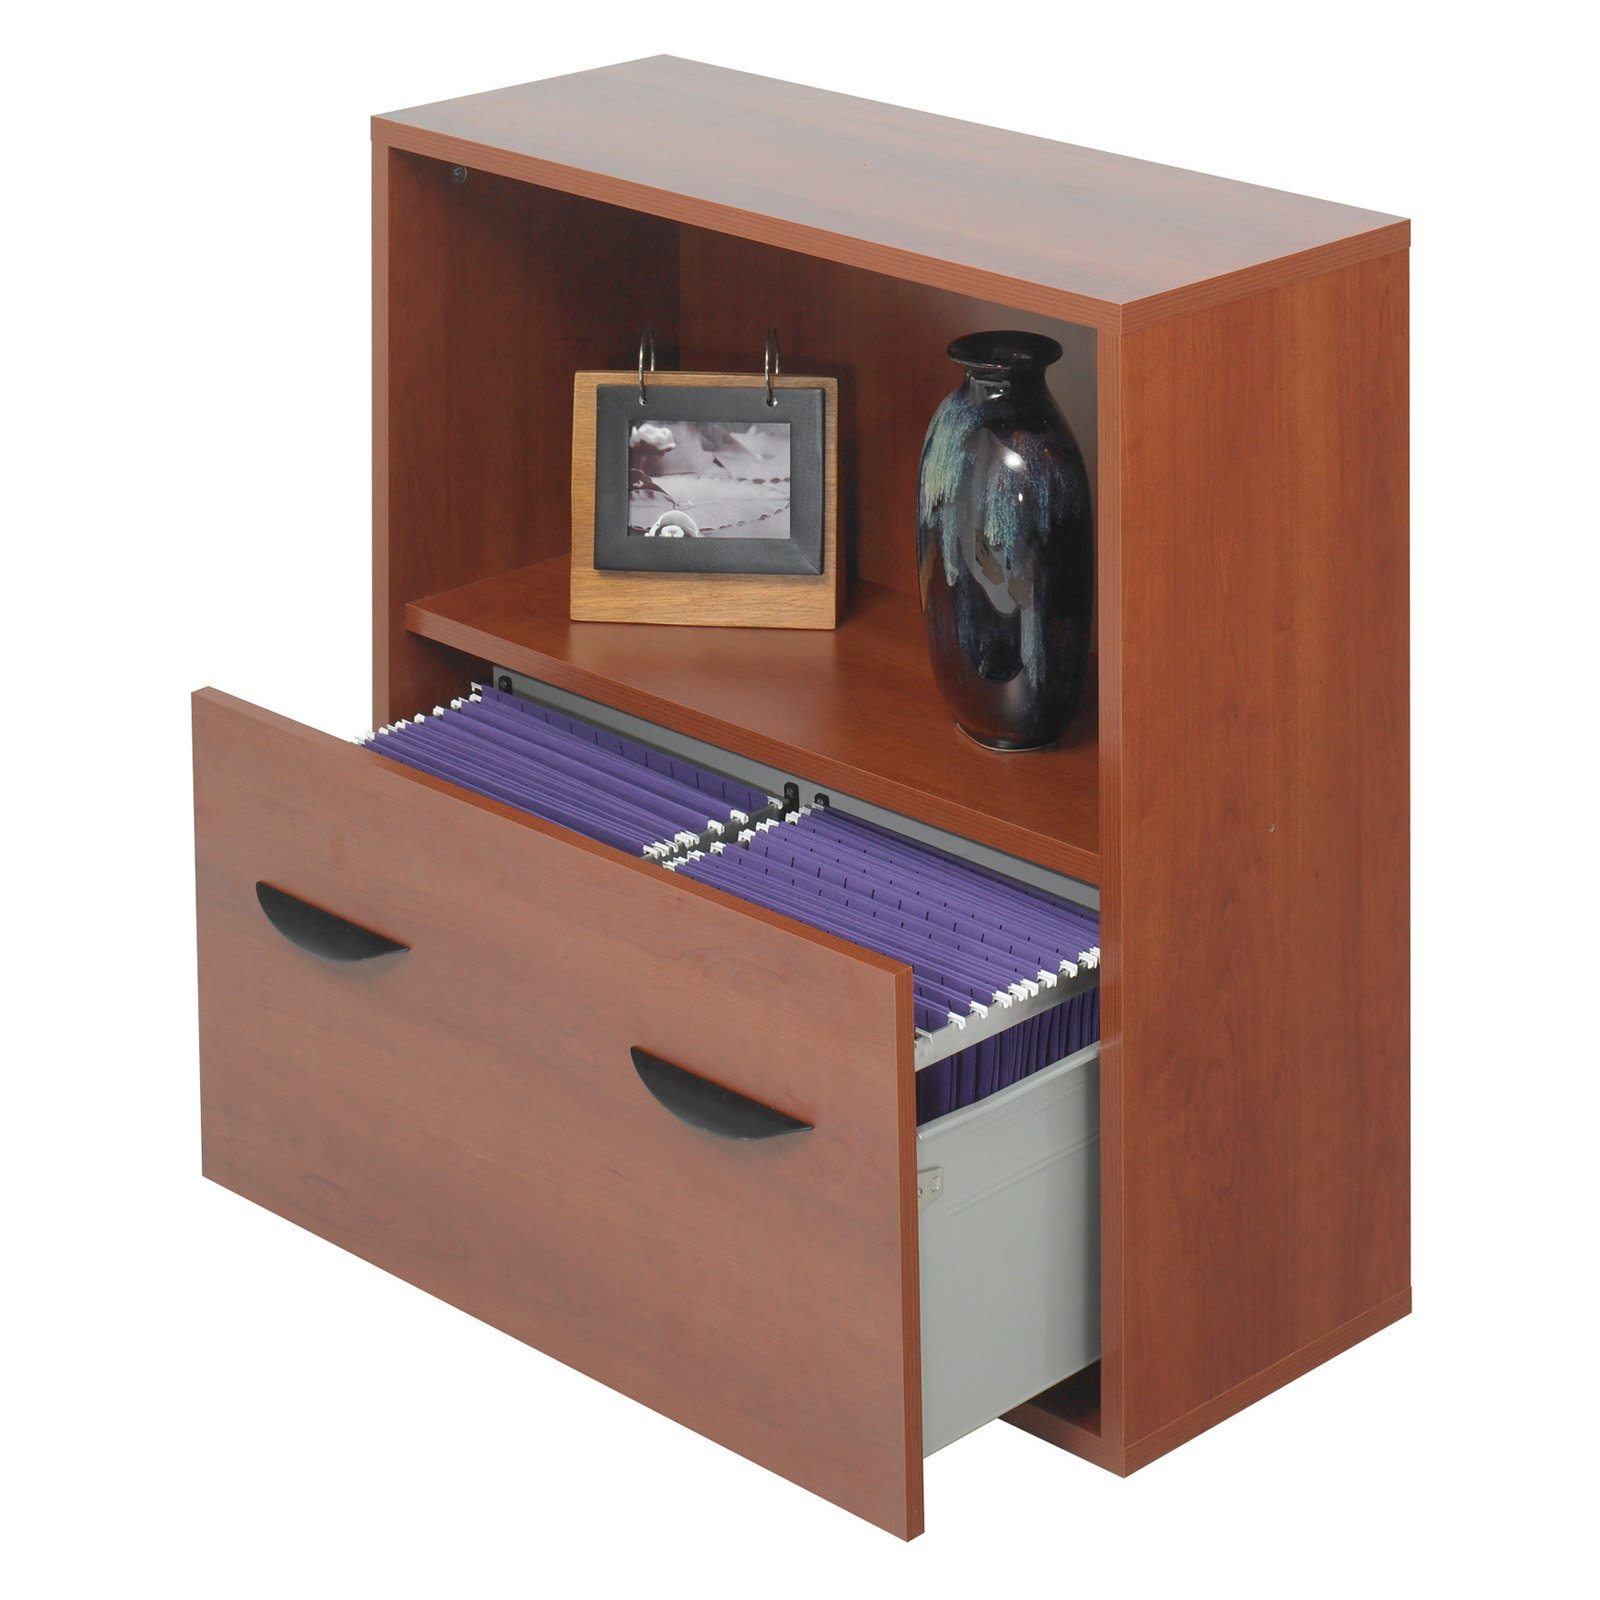 Safco Lateral Filing Cabinet With Bookshelf   Cherry   Walmart.com